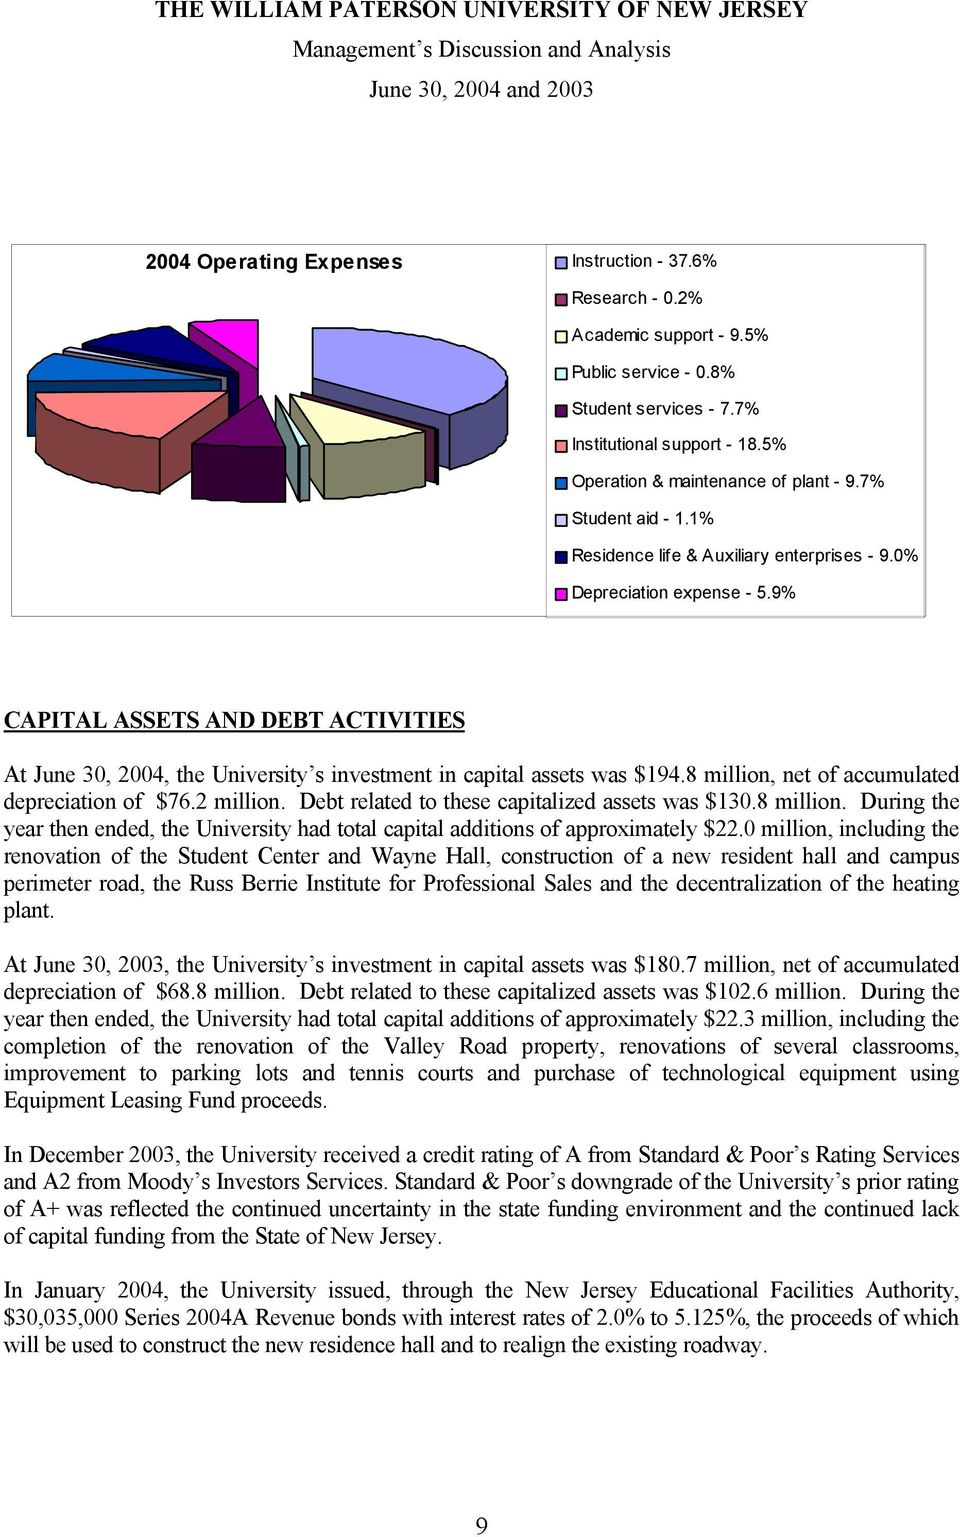 9% CAPITAL ASSETS AND DEBT ACTIVITIES At June 30, 2004, the University s investment in capital assets was $194.8 million, net of accumulated depreciation of $76.2 million.